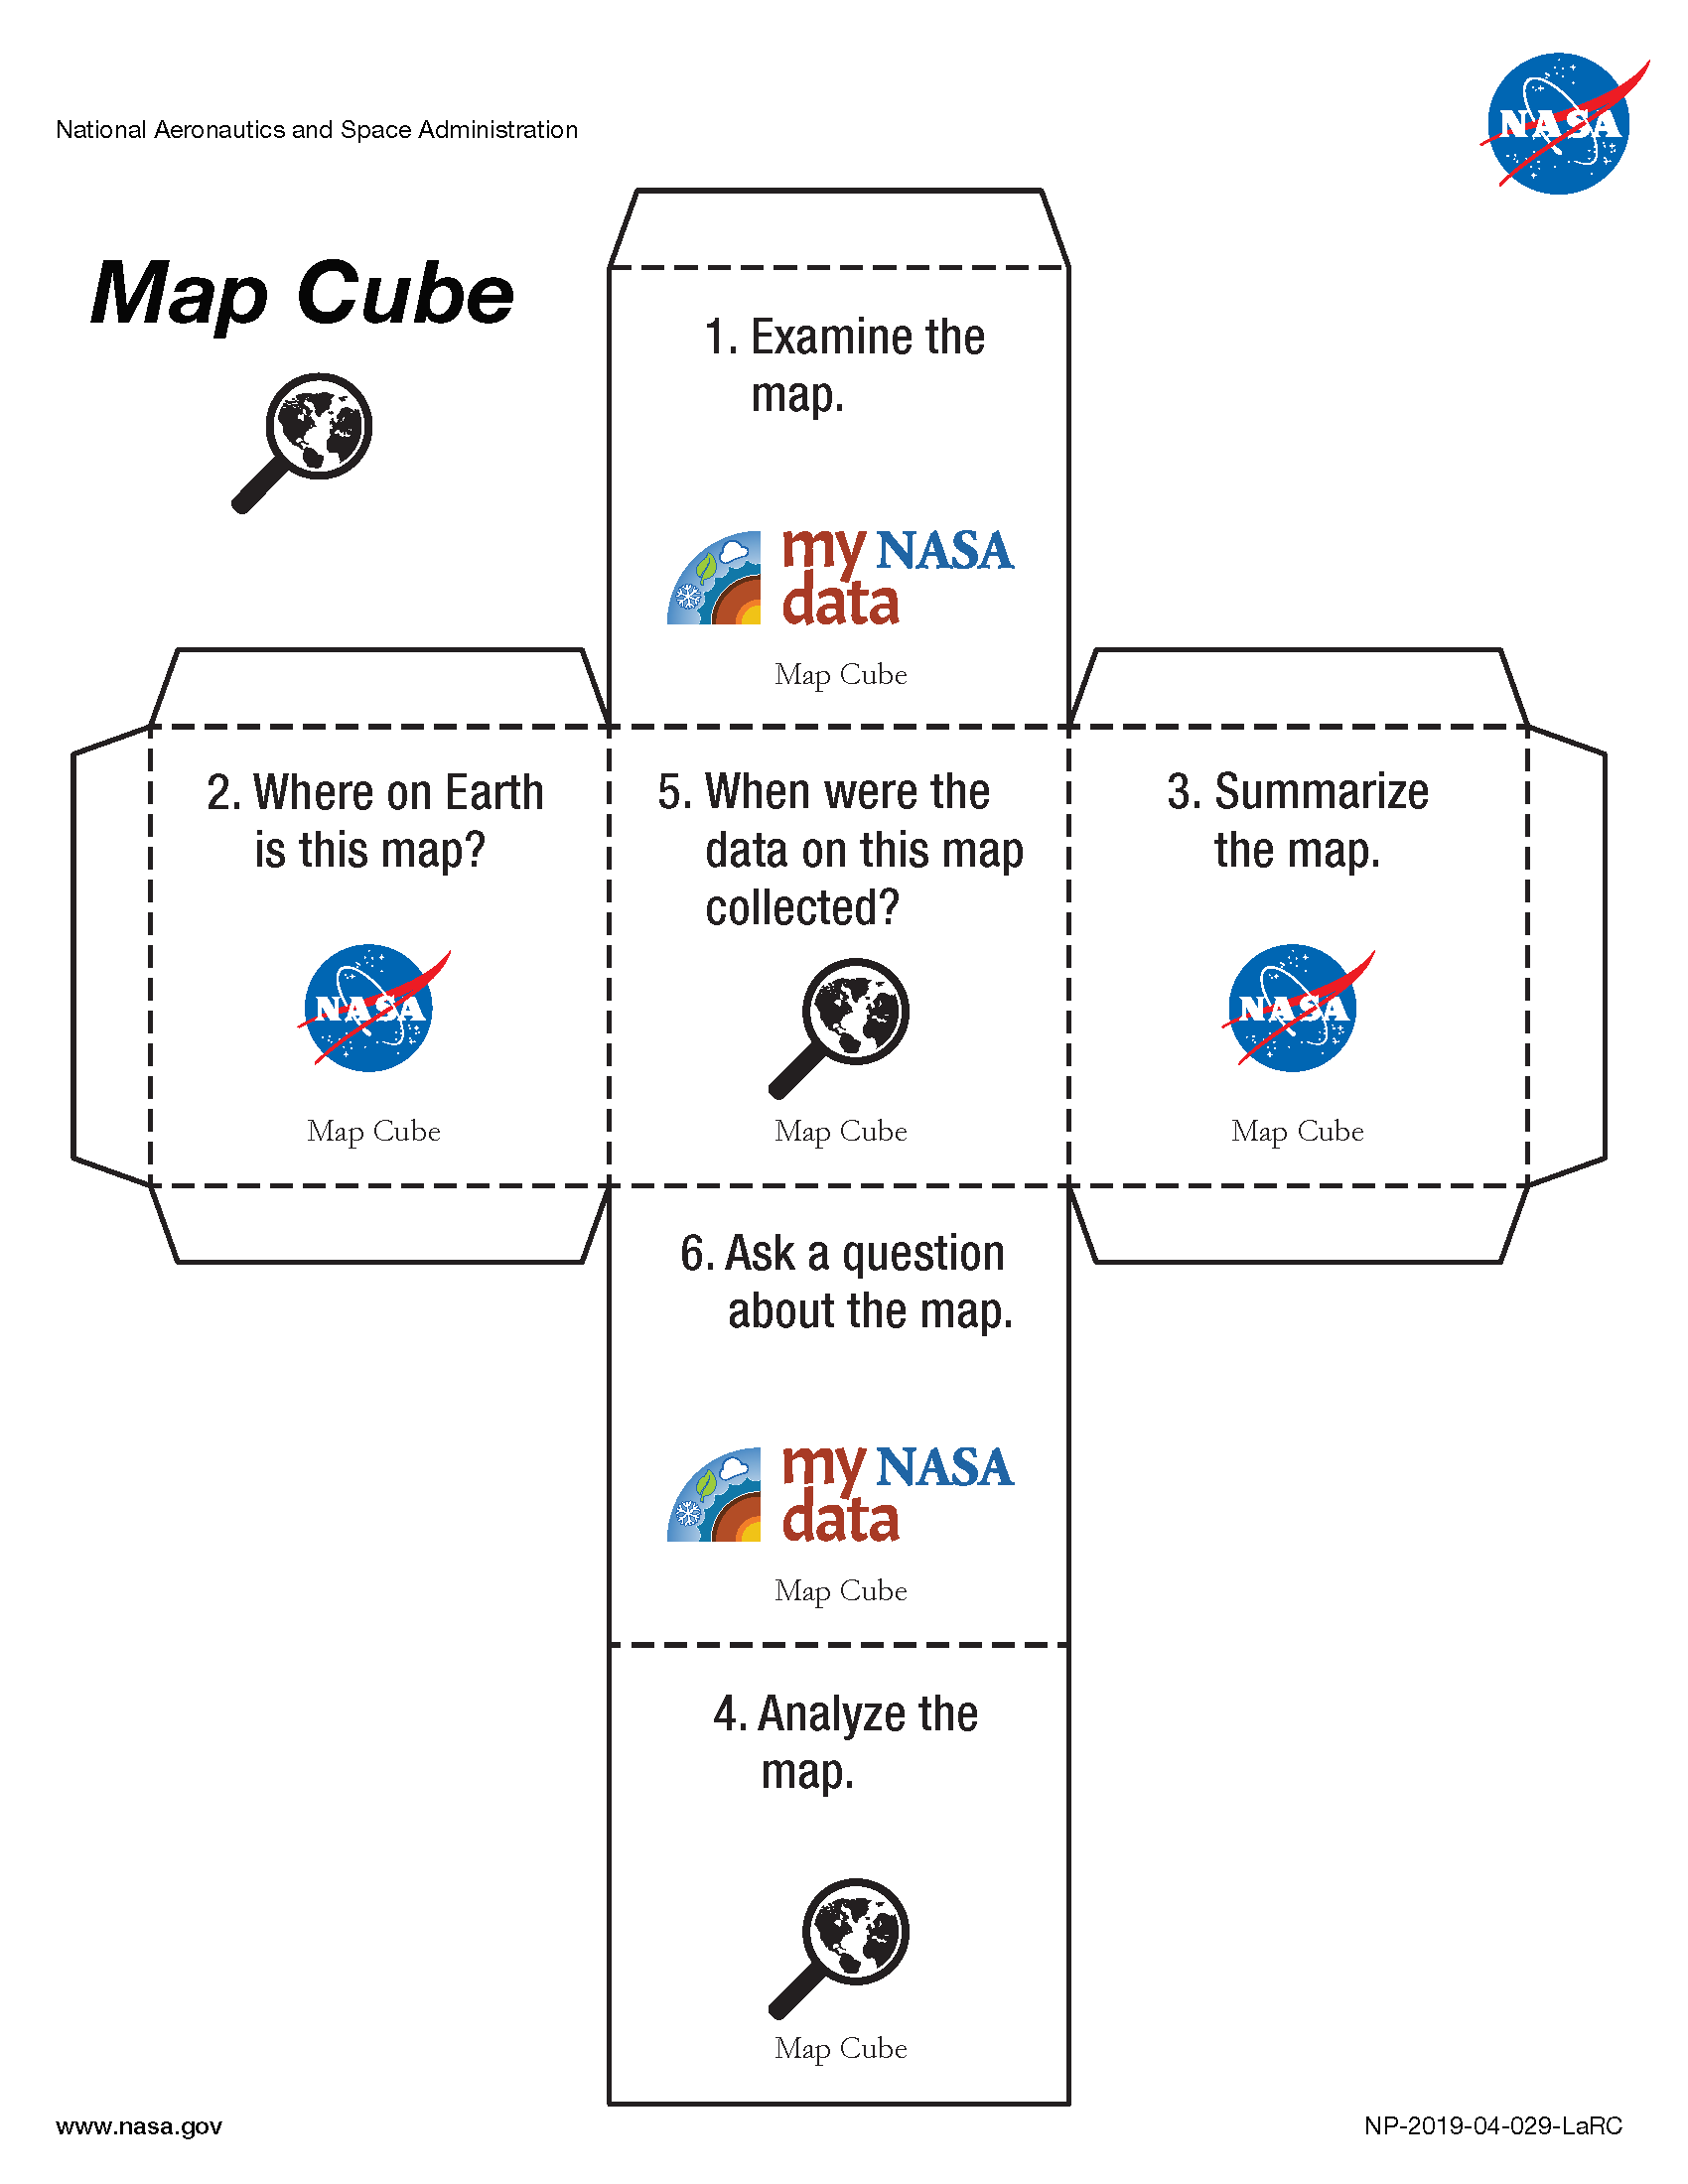 My NASA Data - Data Literacy Cube - Map Image